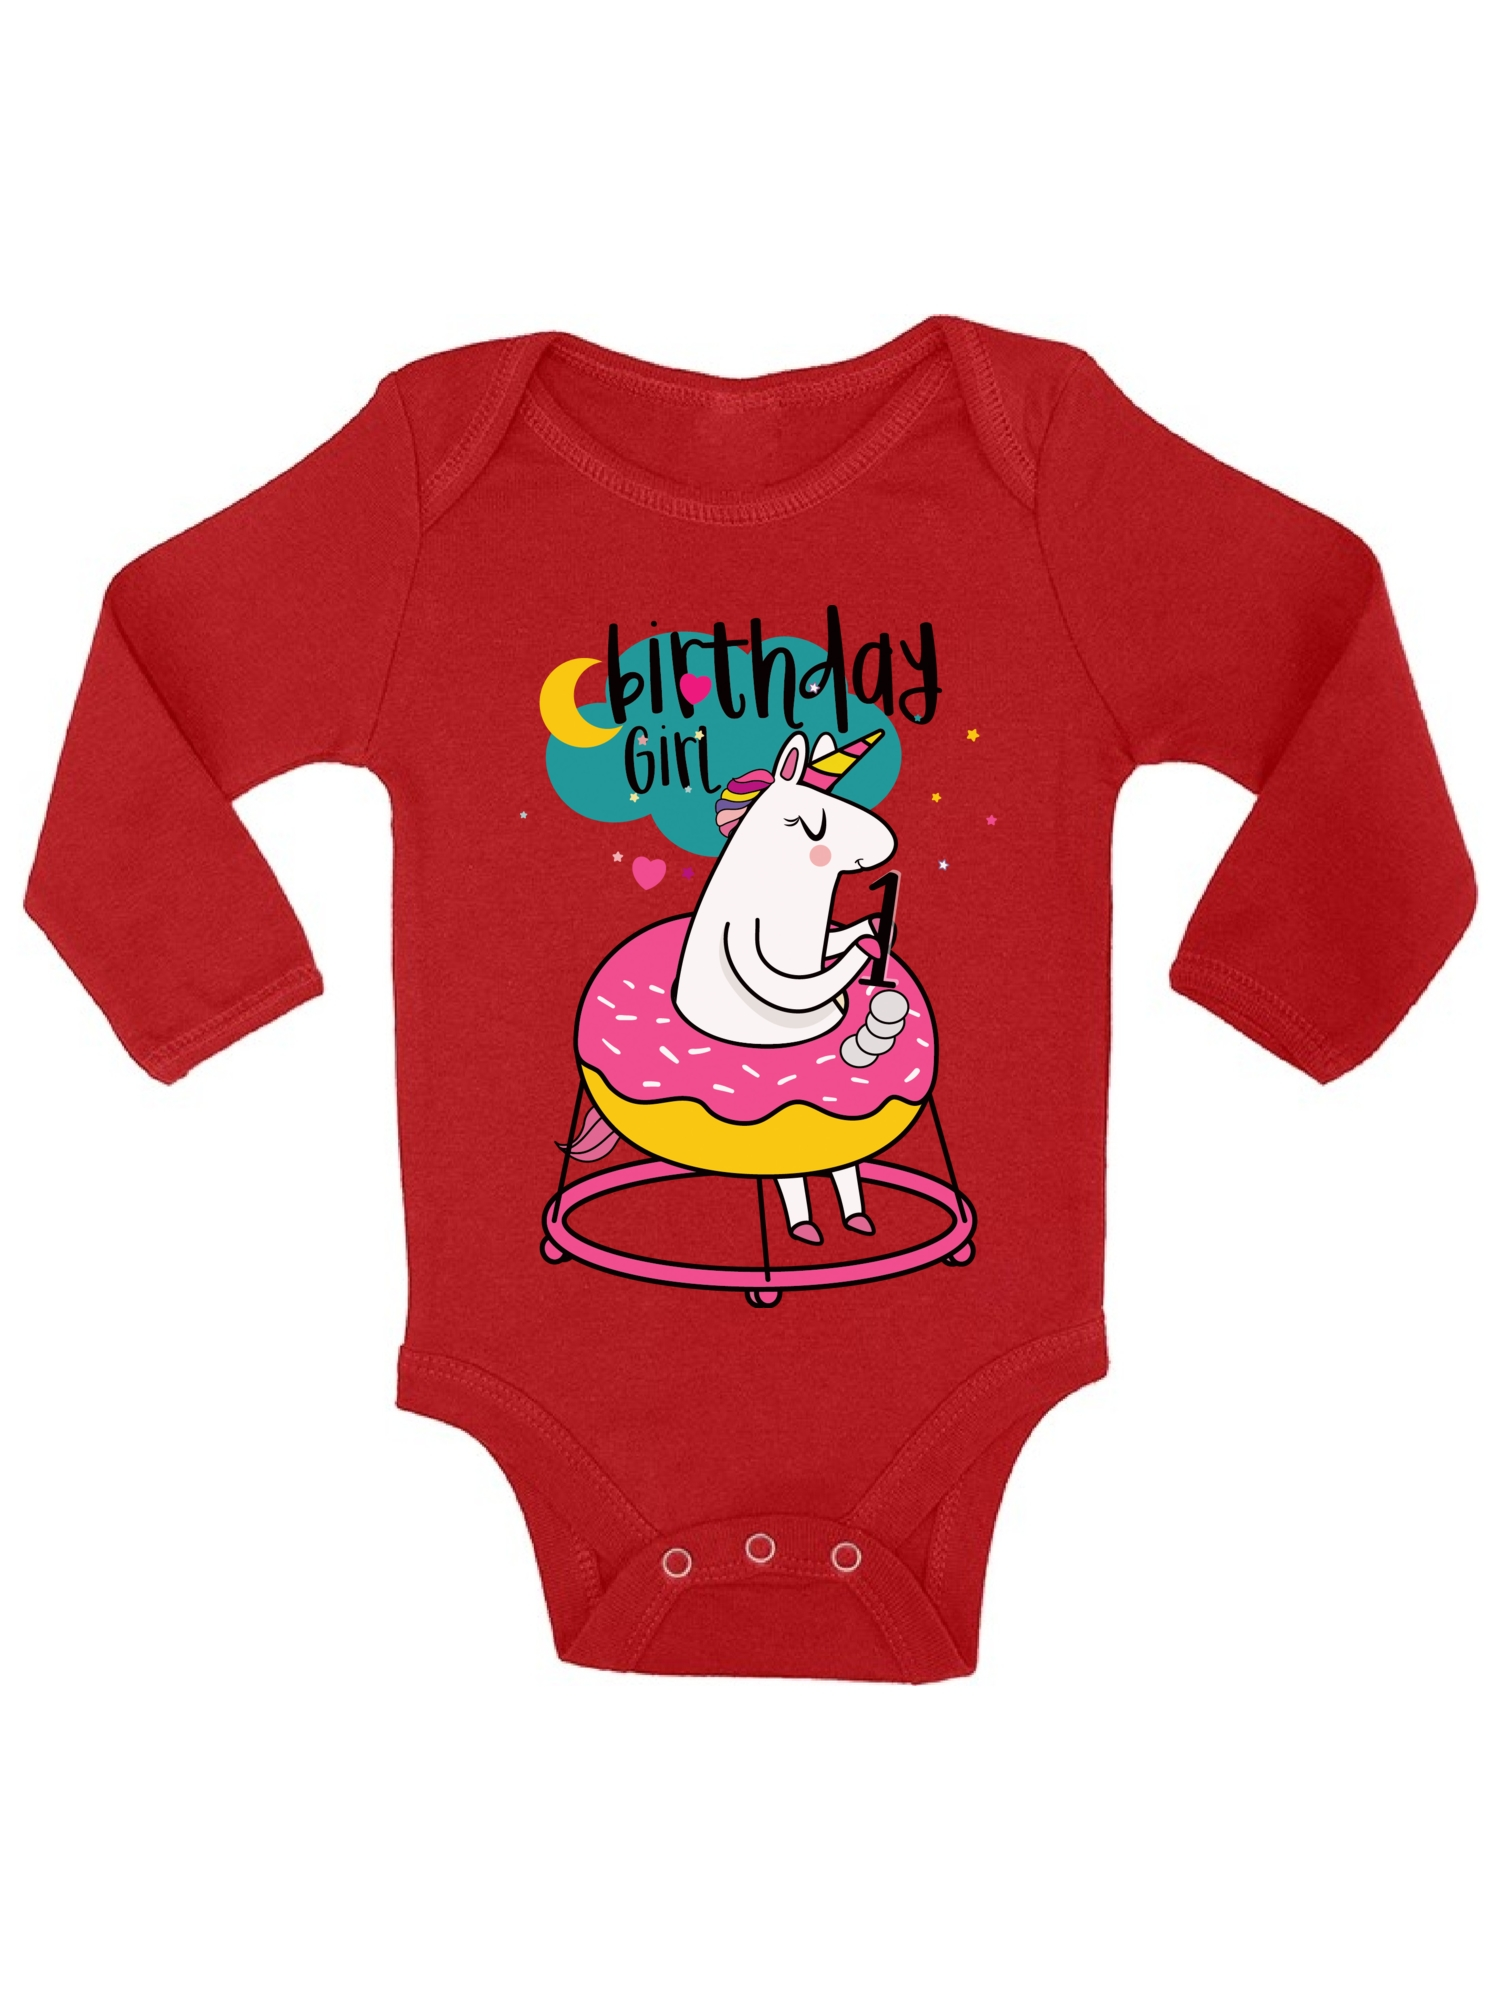 Birthday Girl Baby Bodysuit Short Sleeve Unicorn Birthday One Piece Top 2nd Birthday Party Outfit Unicorn Gifts for Baby Girl.